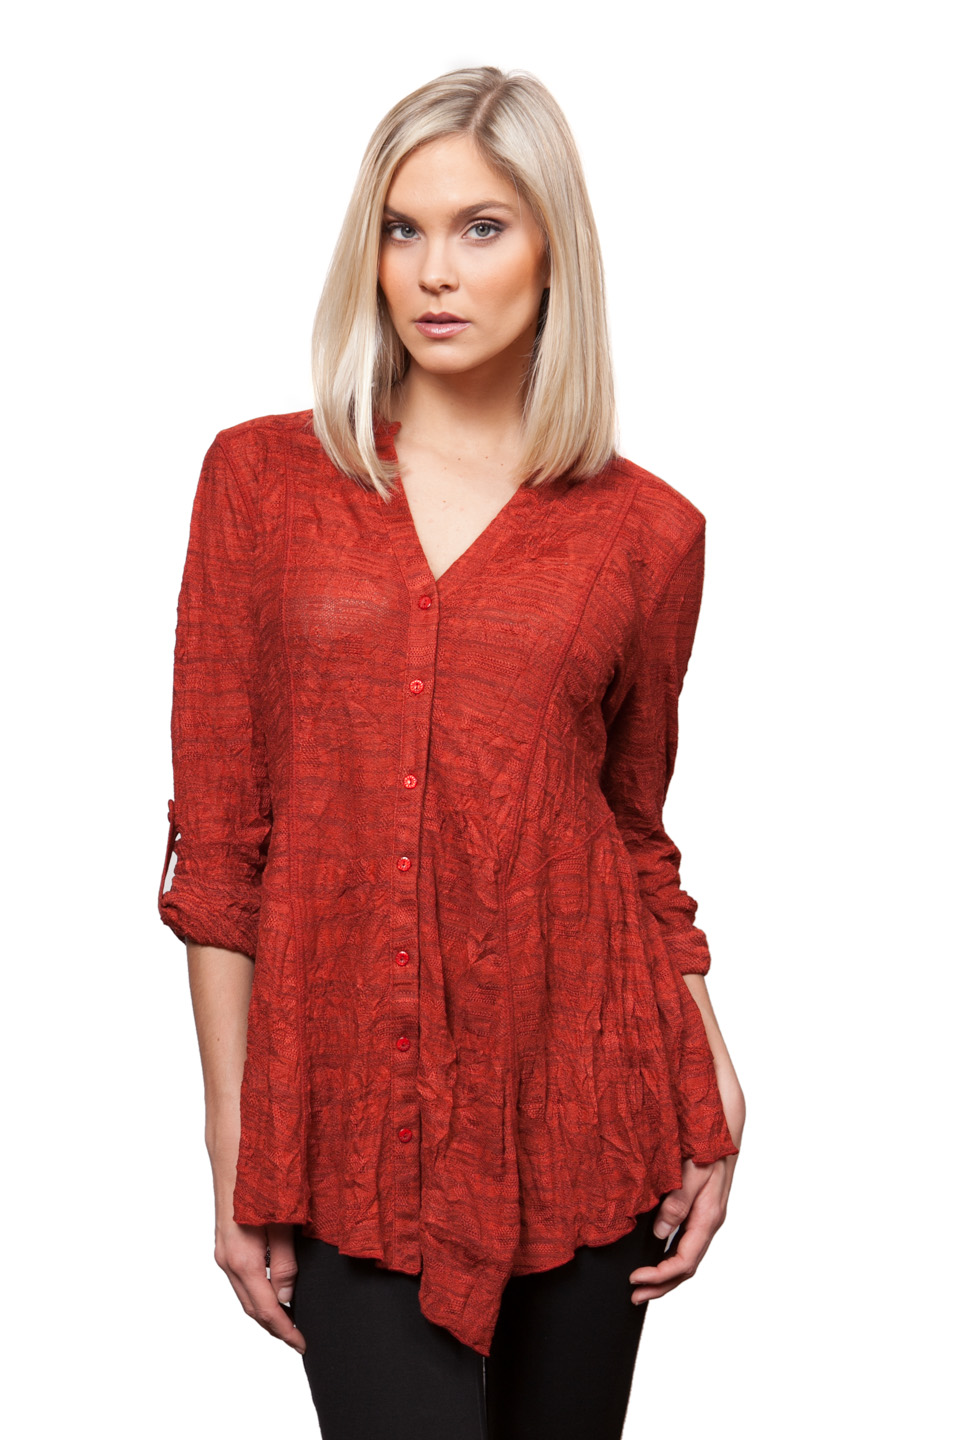 Copy of Style # 53308-16, p. 4<br>Tweedy Crinkle<br>Color: Spice, 4 colors